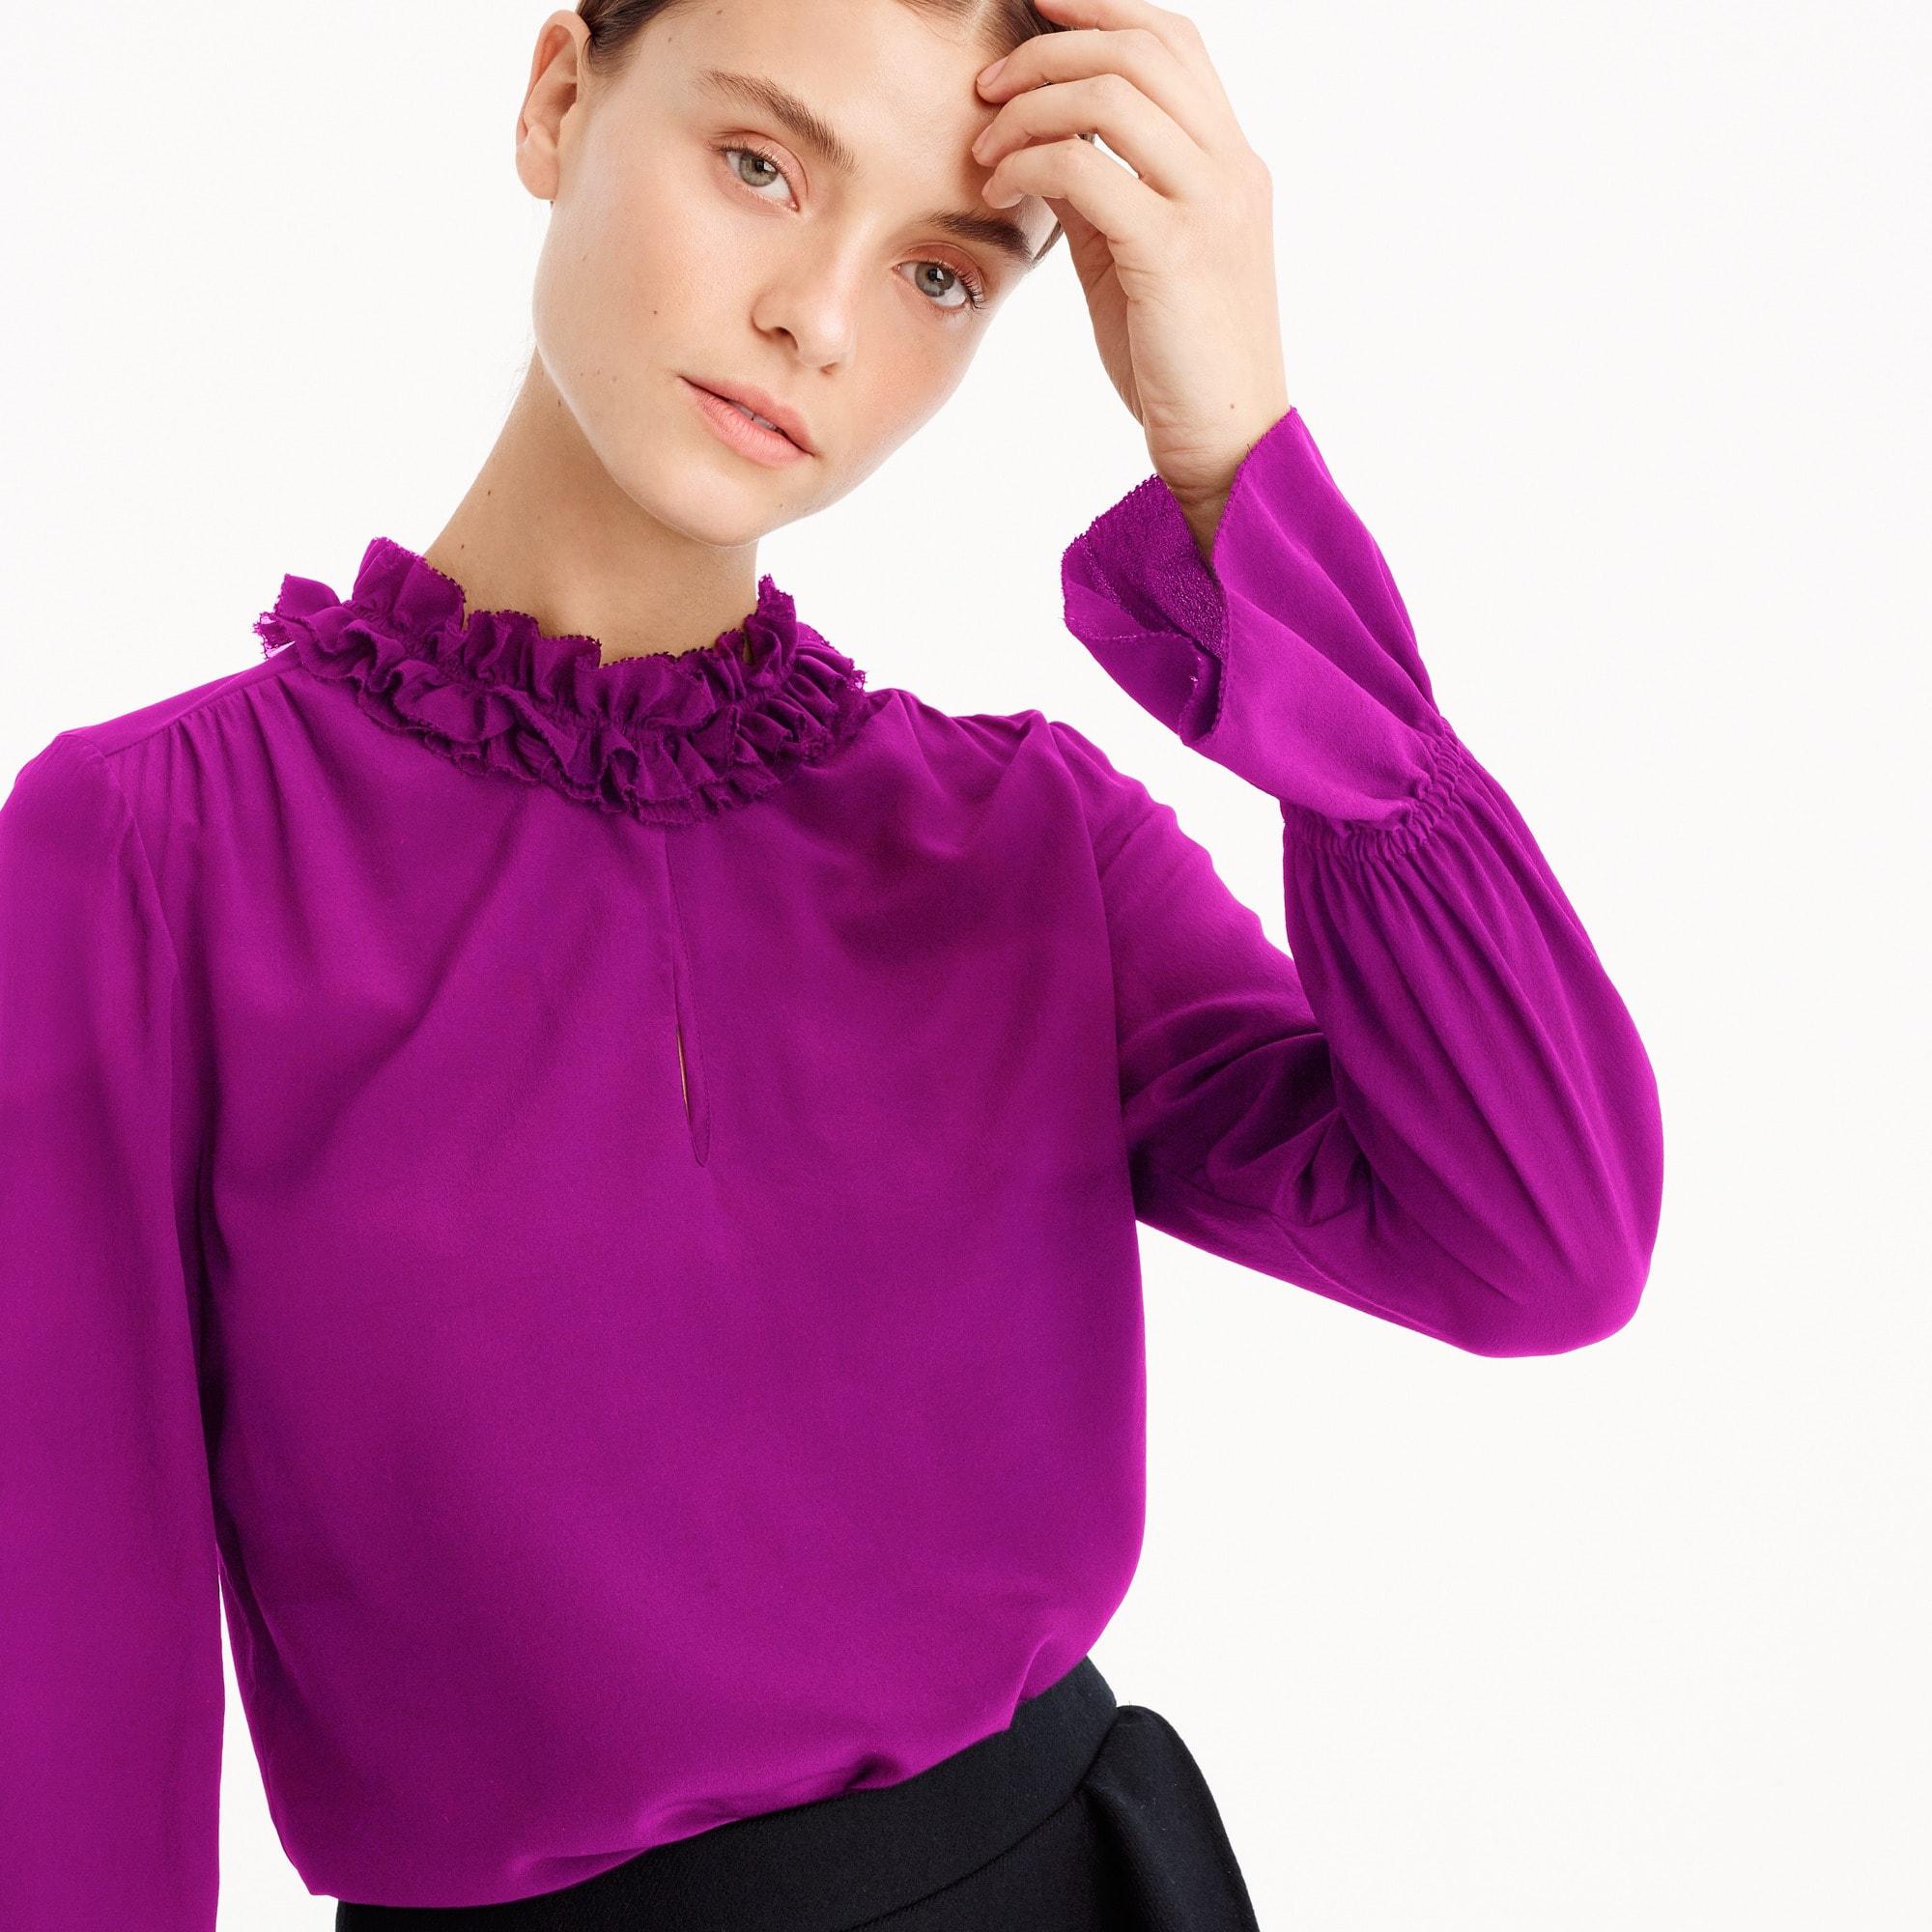 Image 2 for Petite Ruffle-neck silk top